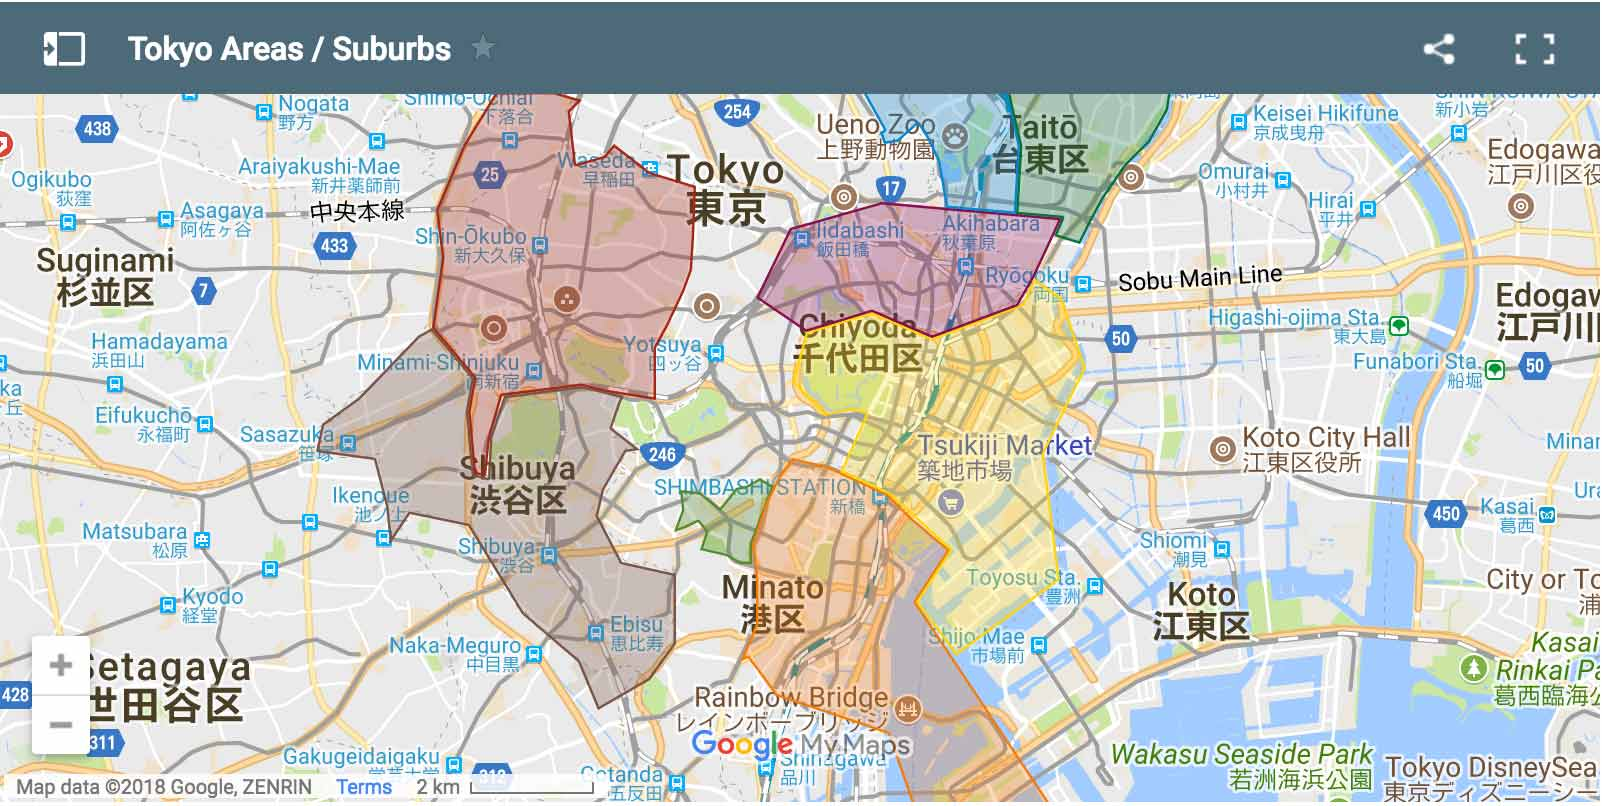 Where To Stay In Tokyo - Our Favourite Areas & Hotels In Tokyo